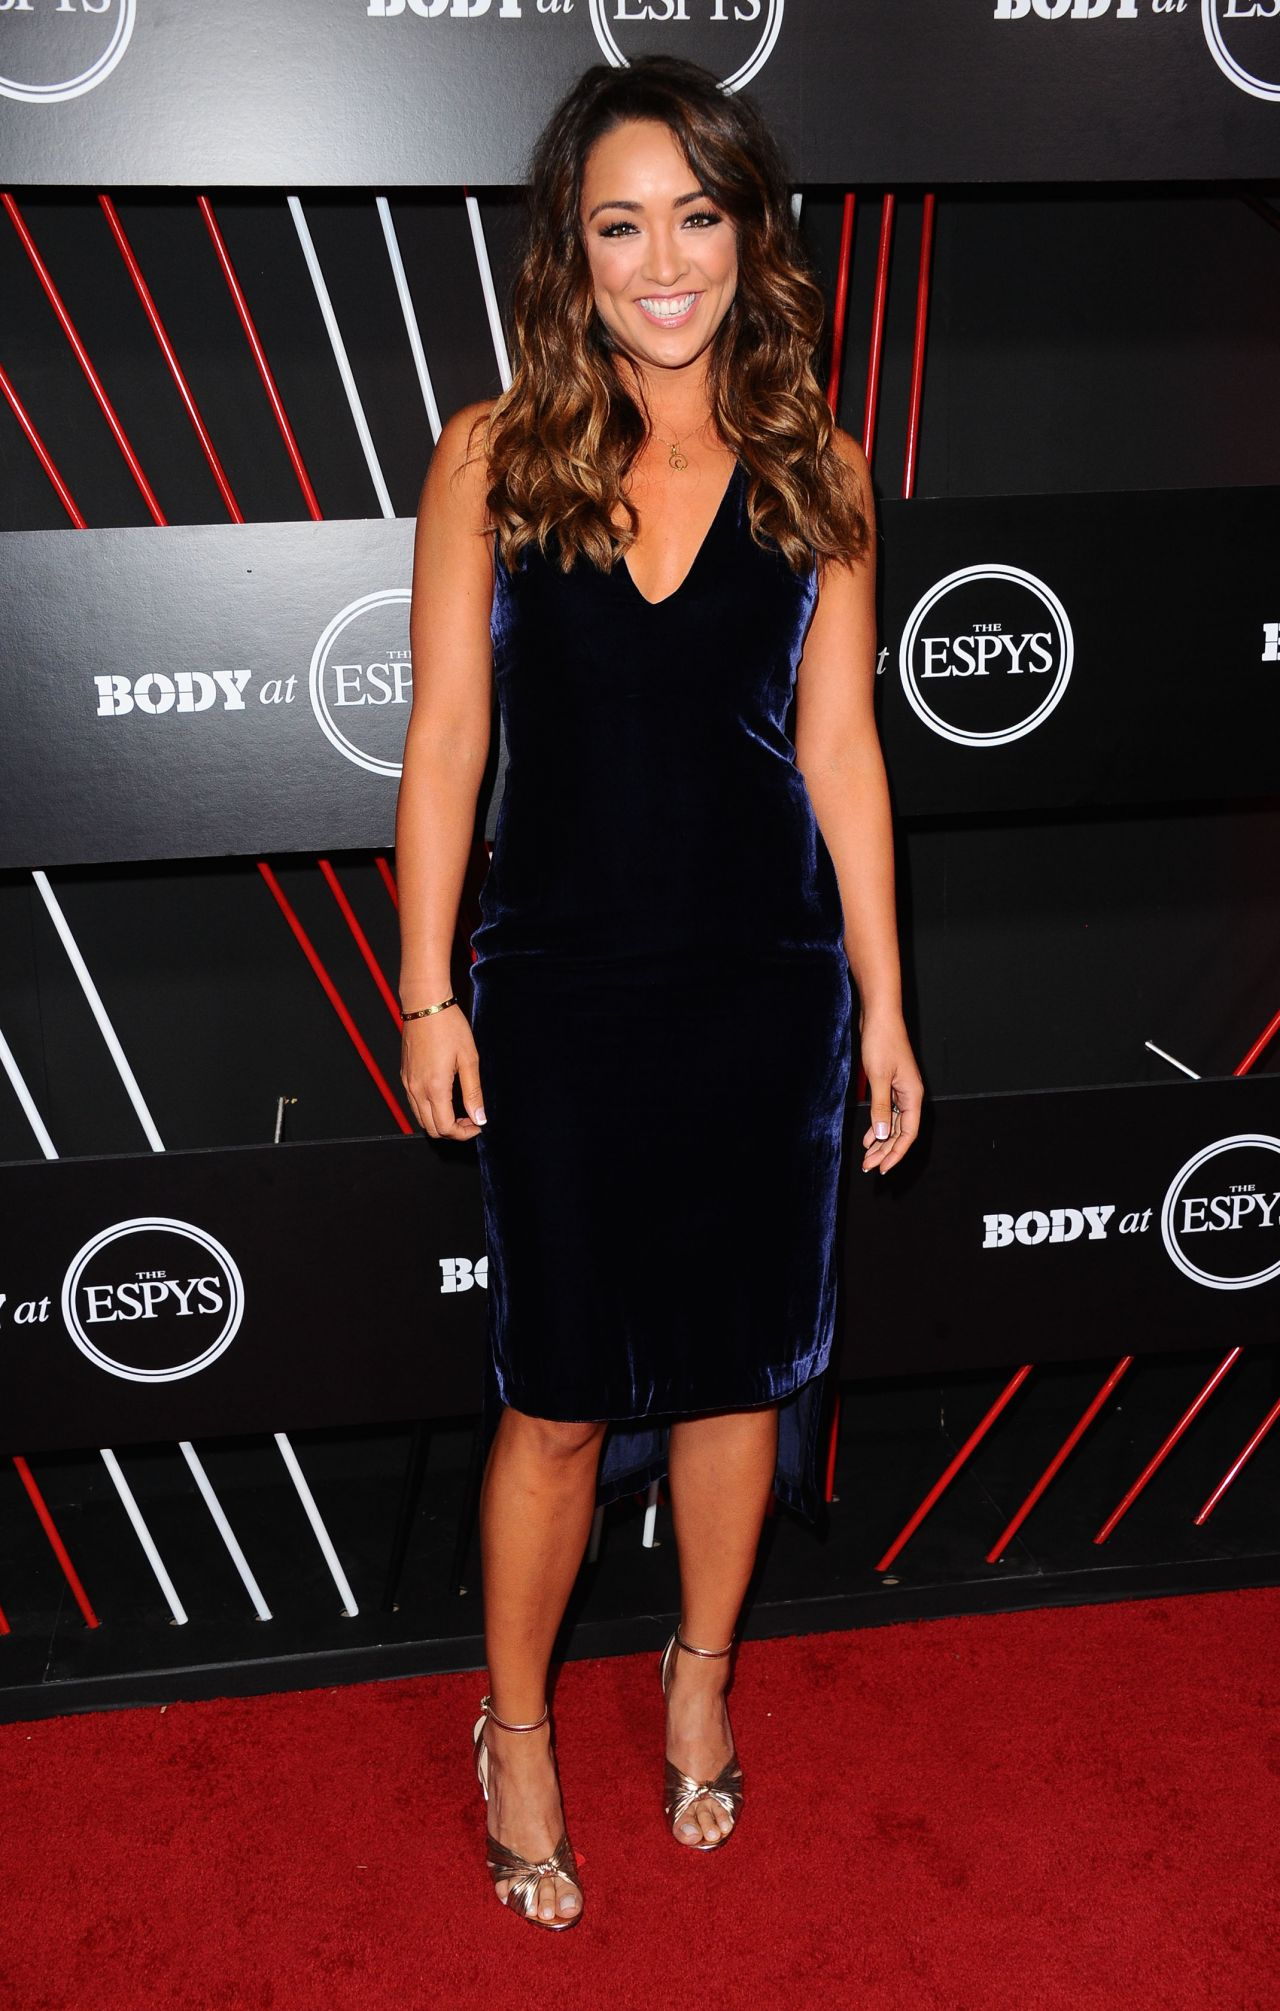 Image Result For Espys